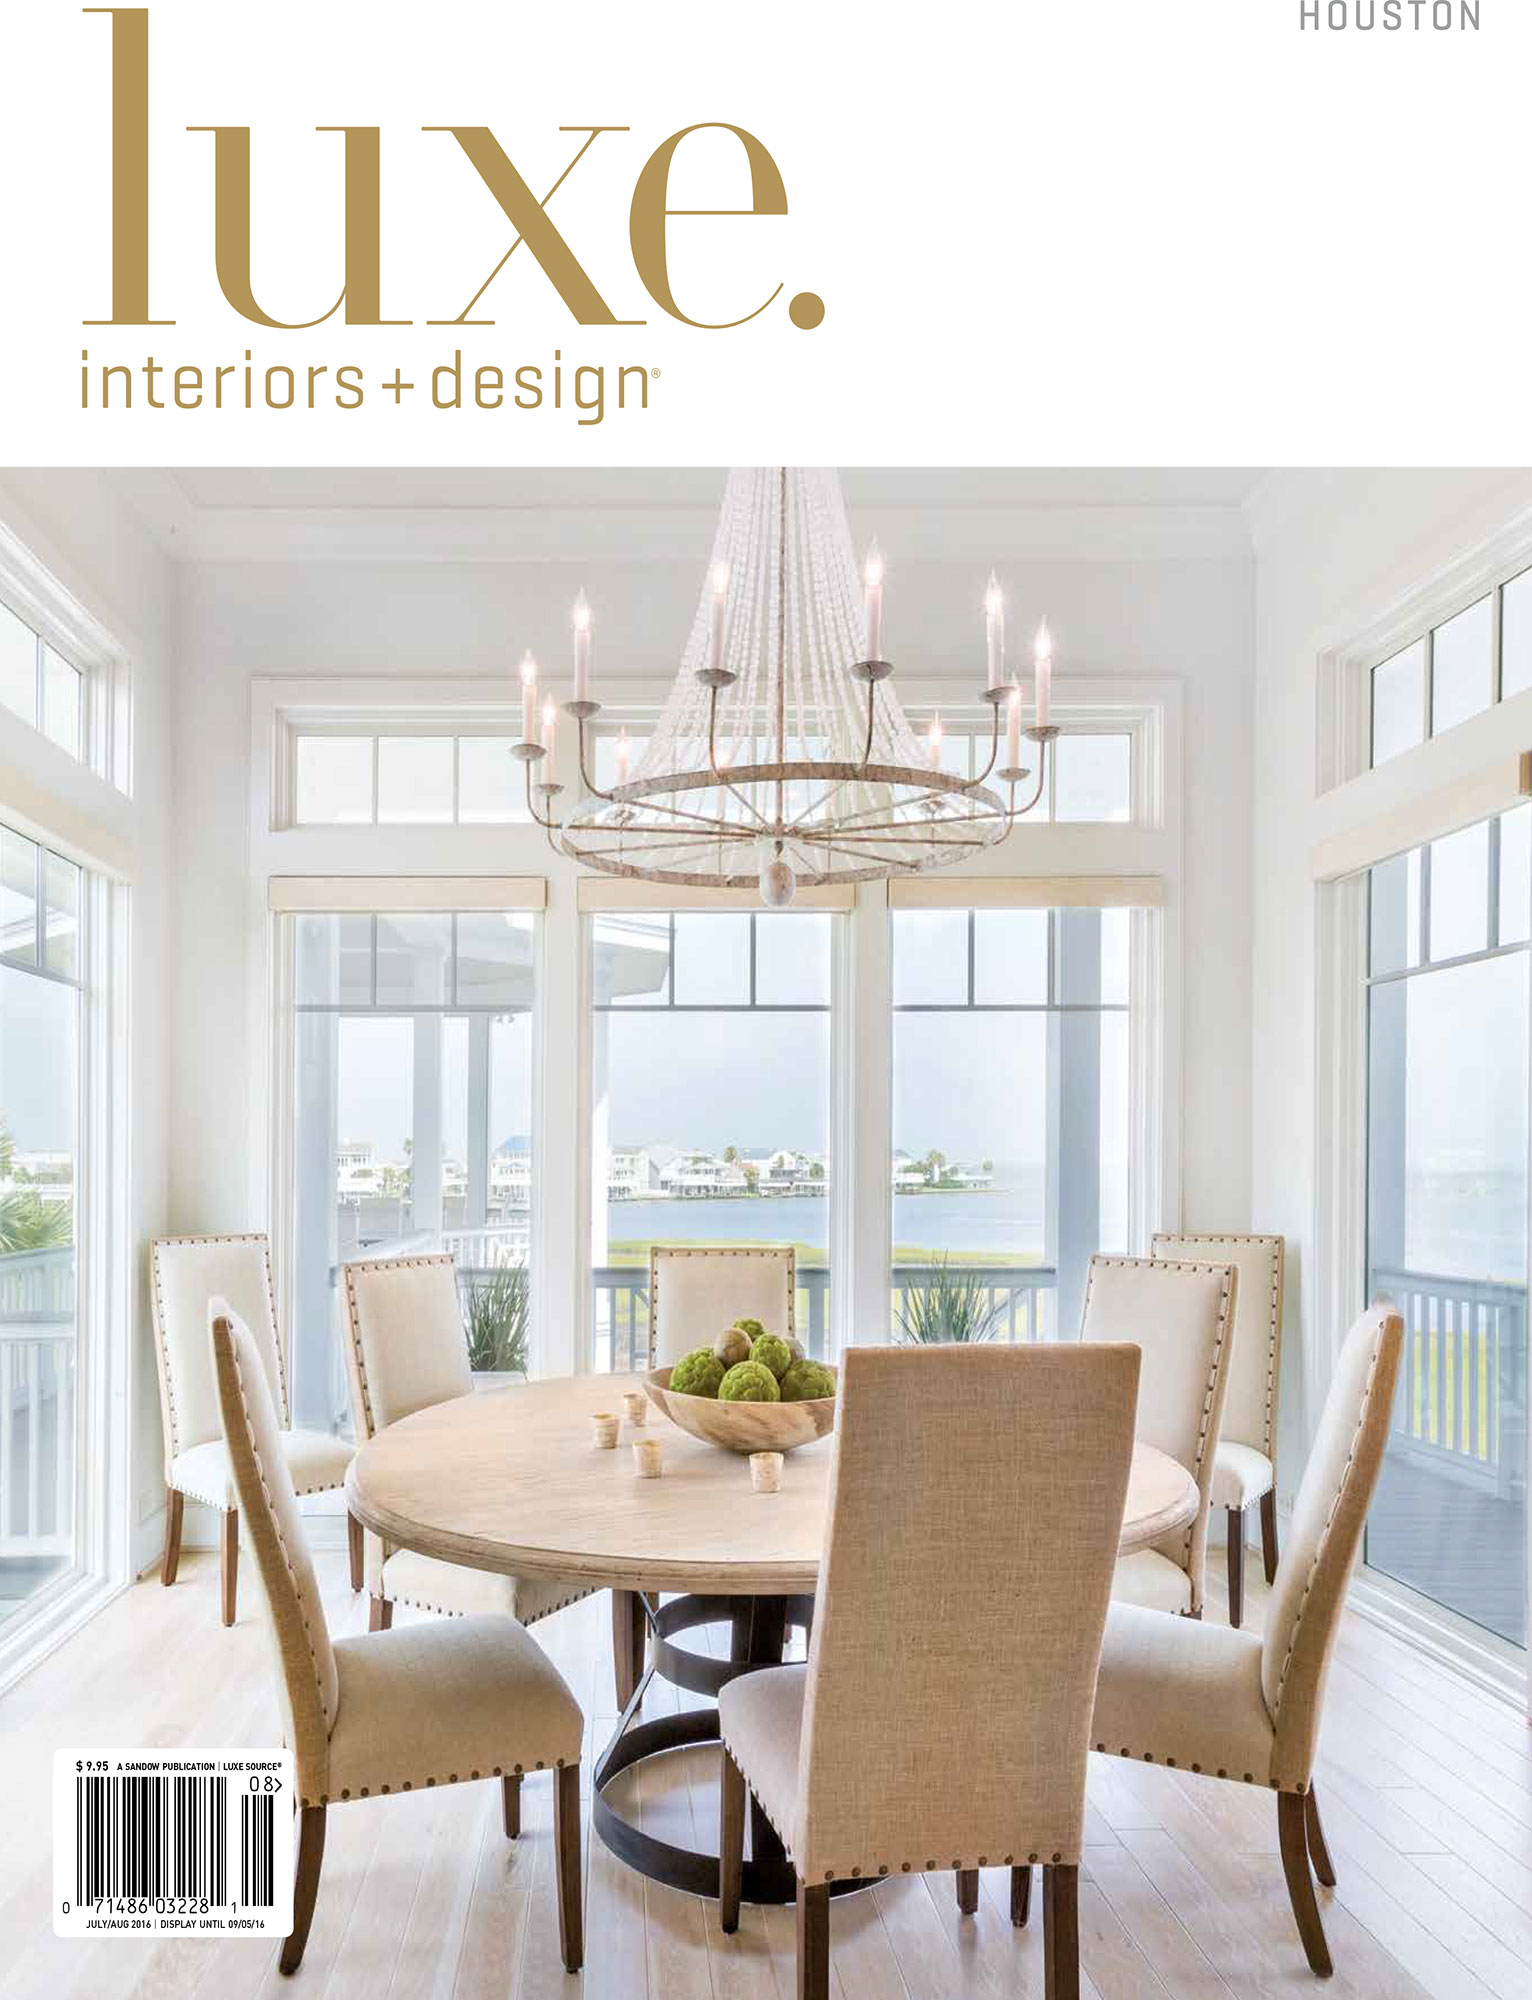 Houston Luxe Interiors + Design - Magazine Photography - Julie Soefer Photography